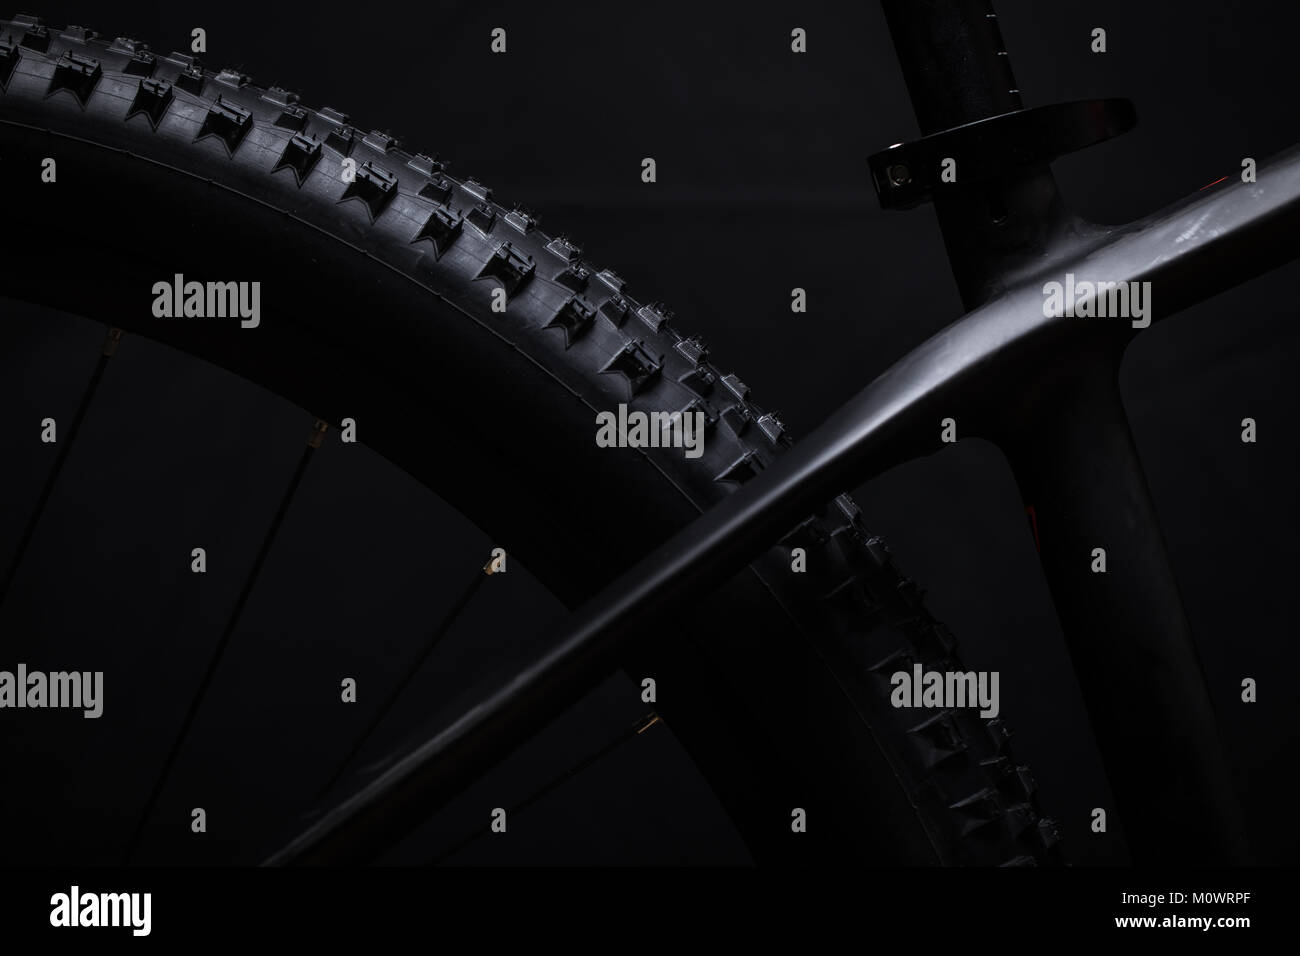 Modern MTB race mountain bike isolated on black background in a studio - Stock Image